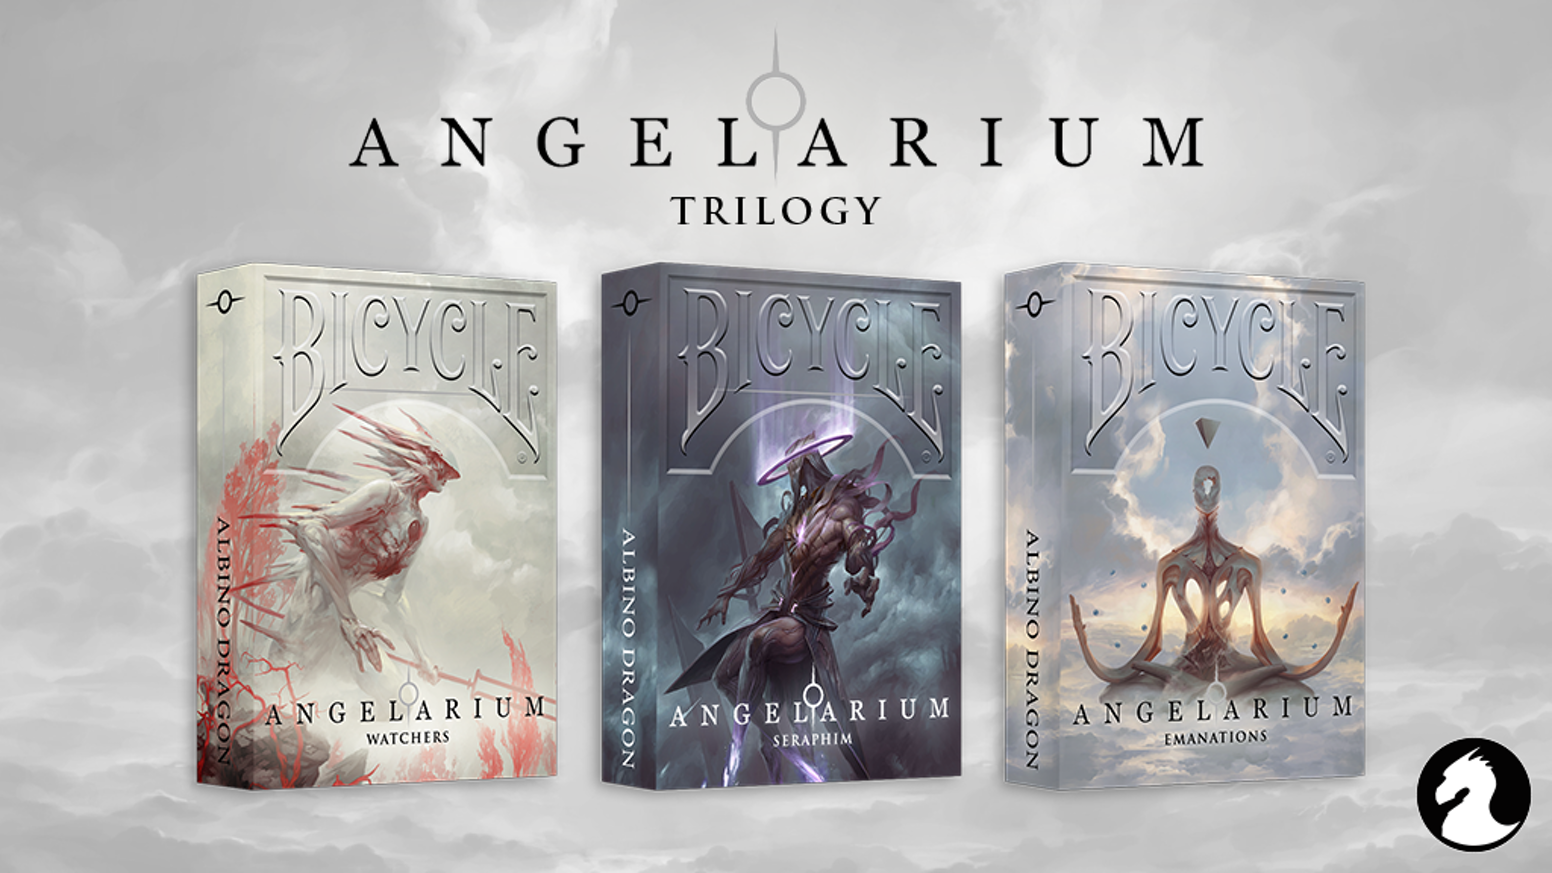 Officially licensed Playing Cards based on Angelarium. Artwork by Pete Mohrbacher. Printed by USPC (Bicycle)